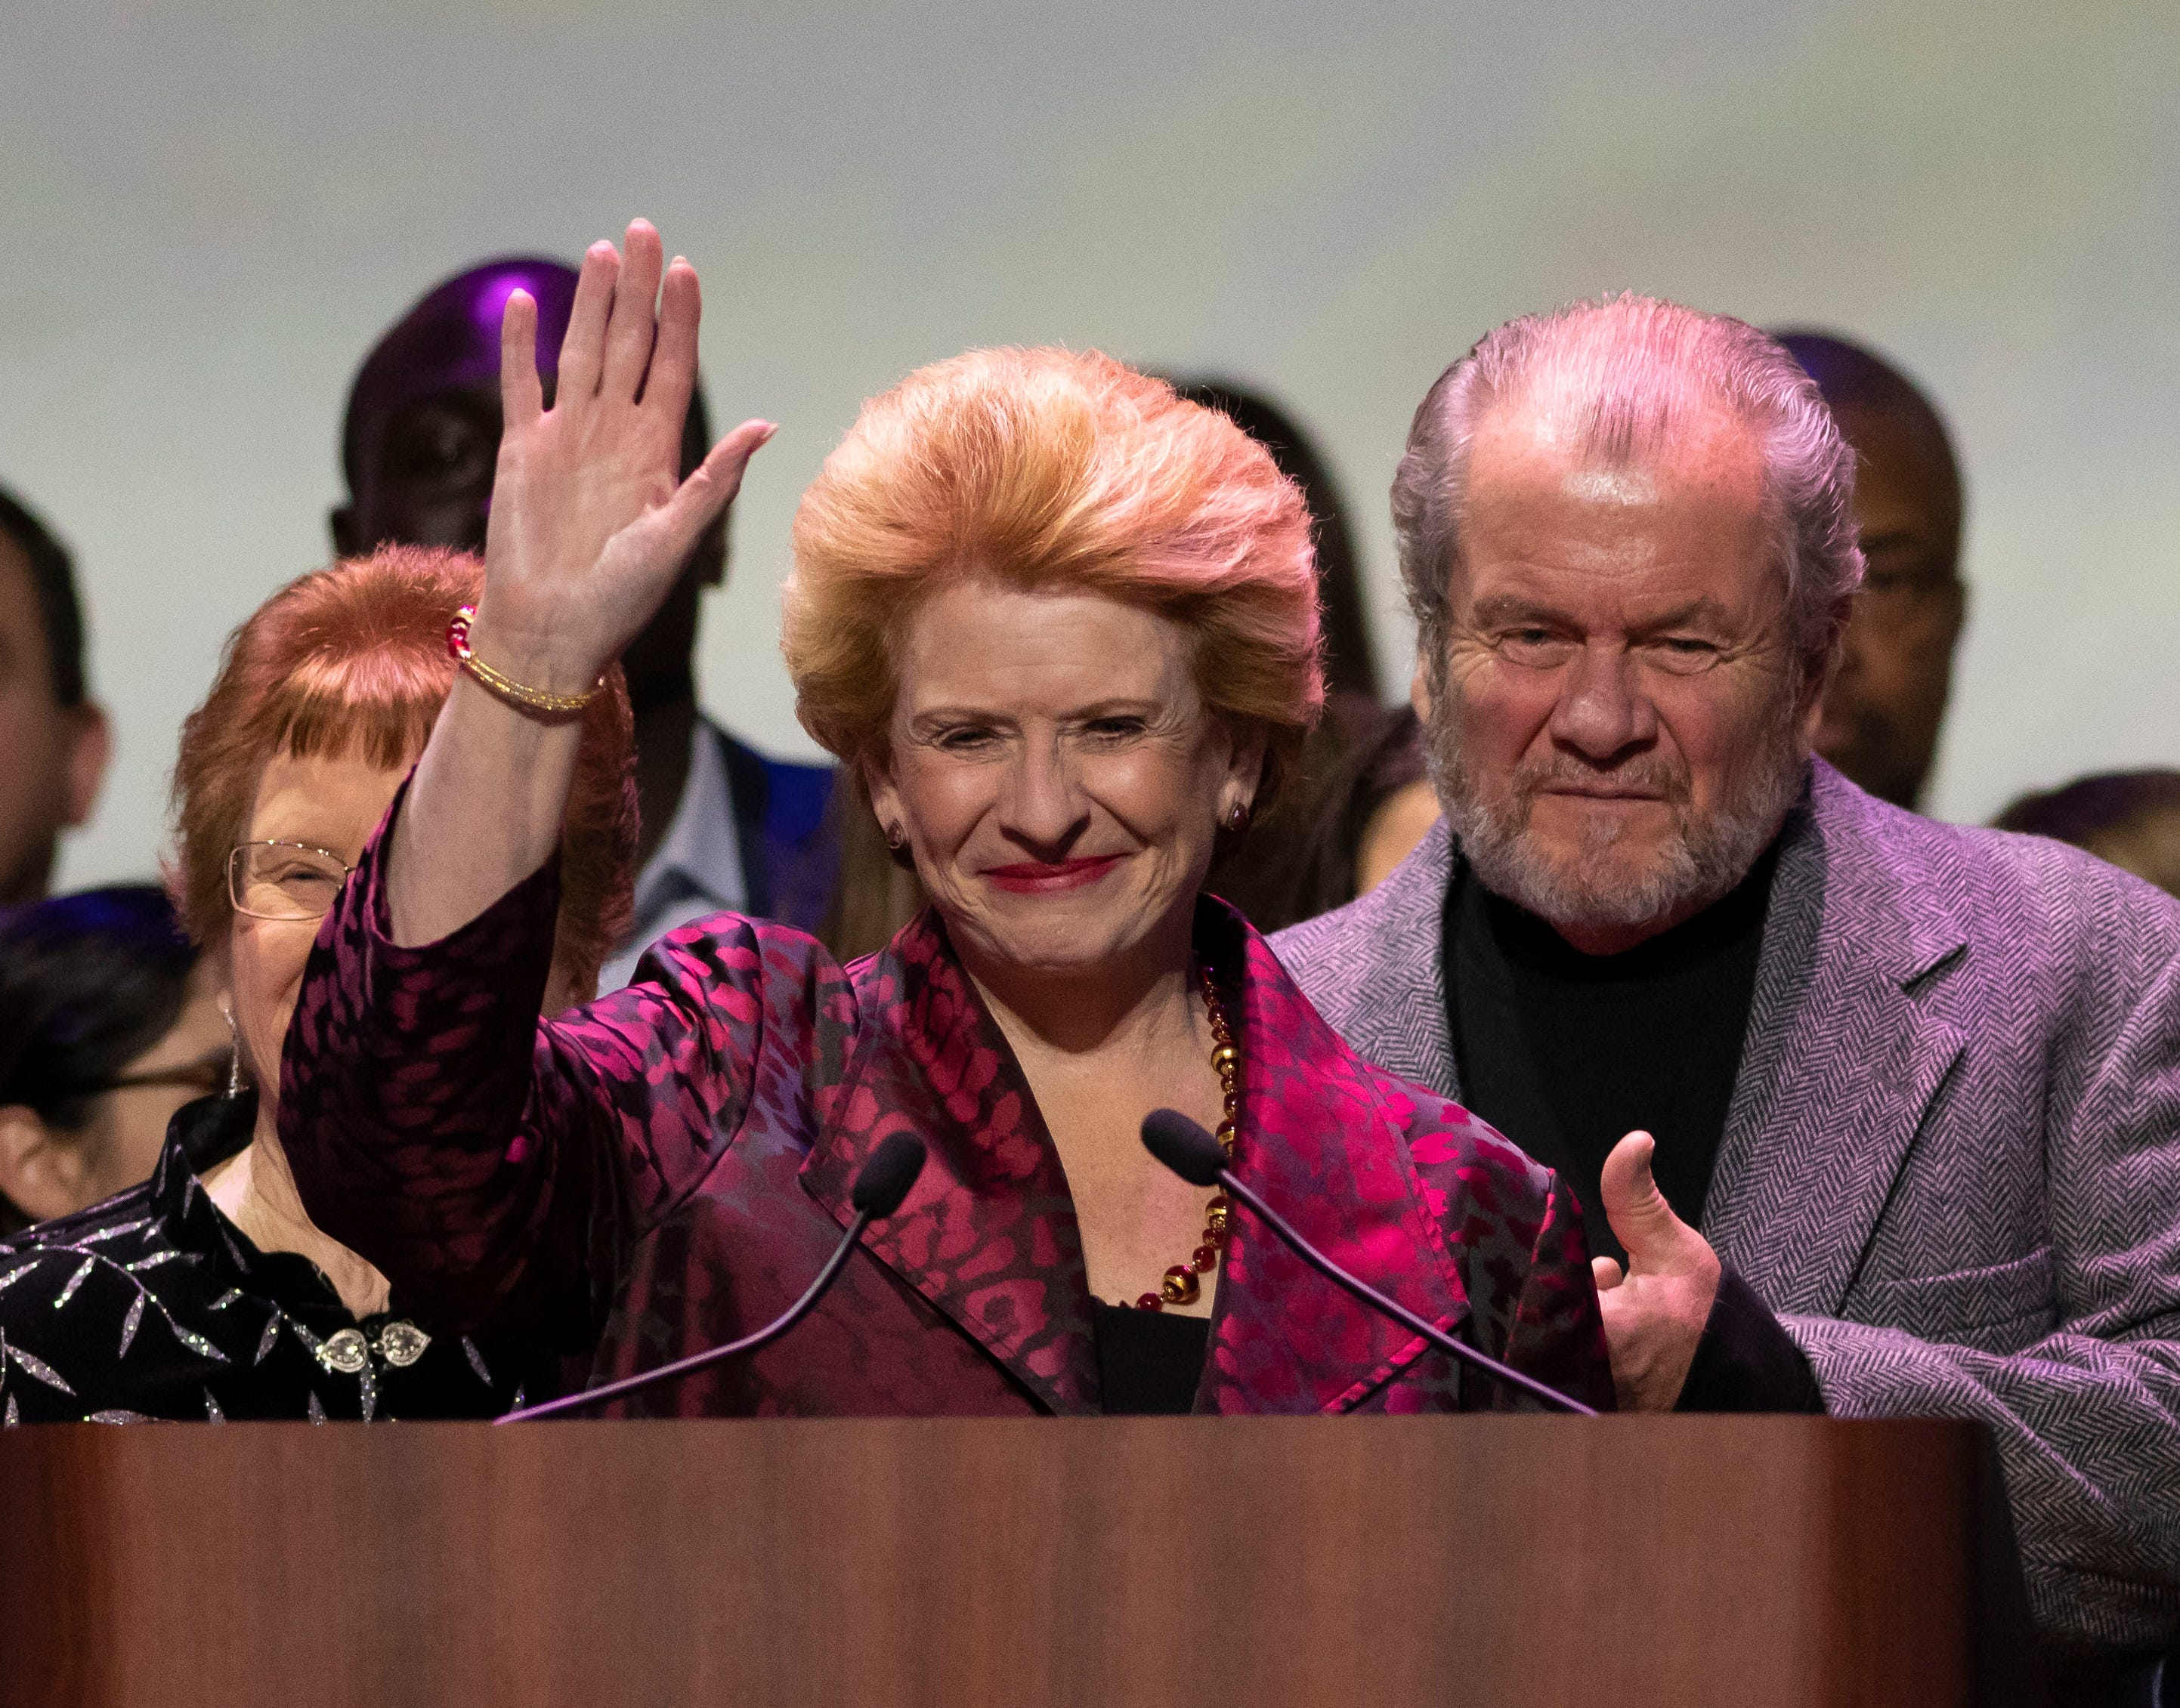 U.S. Sen. Debbie Stabenow speaks to the Democratic gathering after being re-elected for another six-year term during a Michigan Democratic Party election night event at the Sound Board Theater at Motor City Casino, in Detroit.